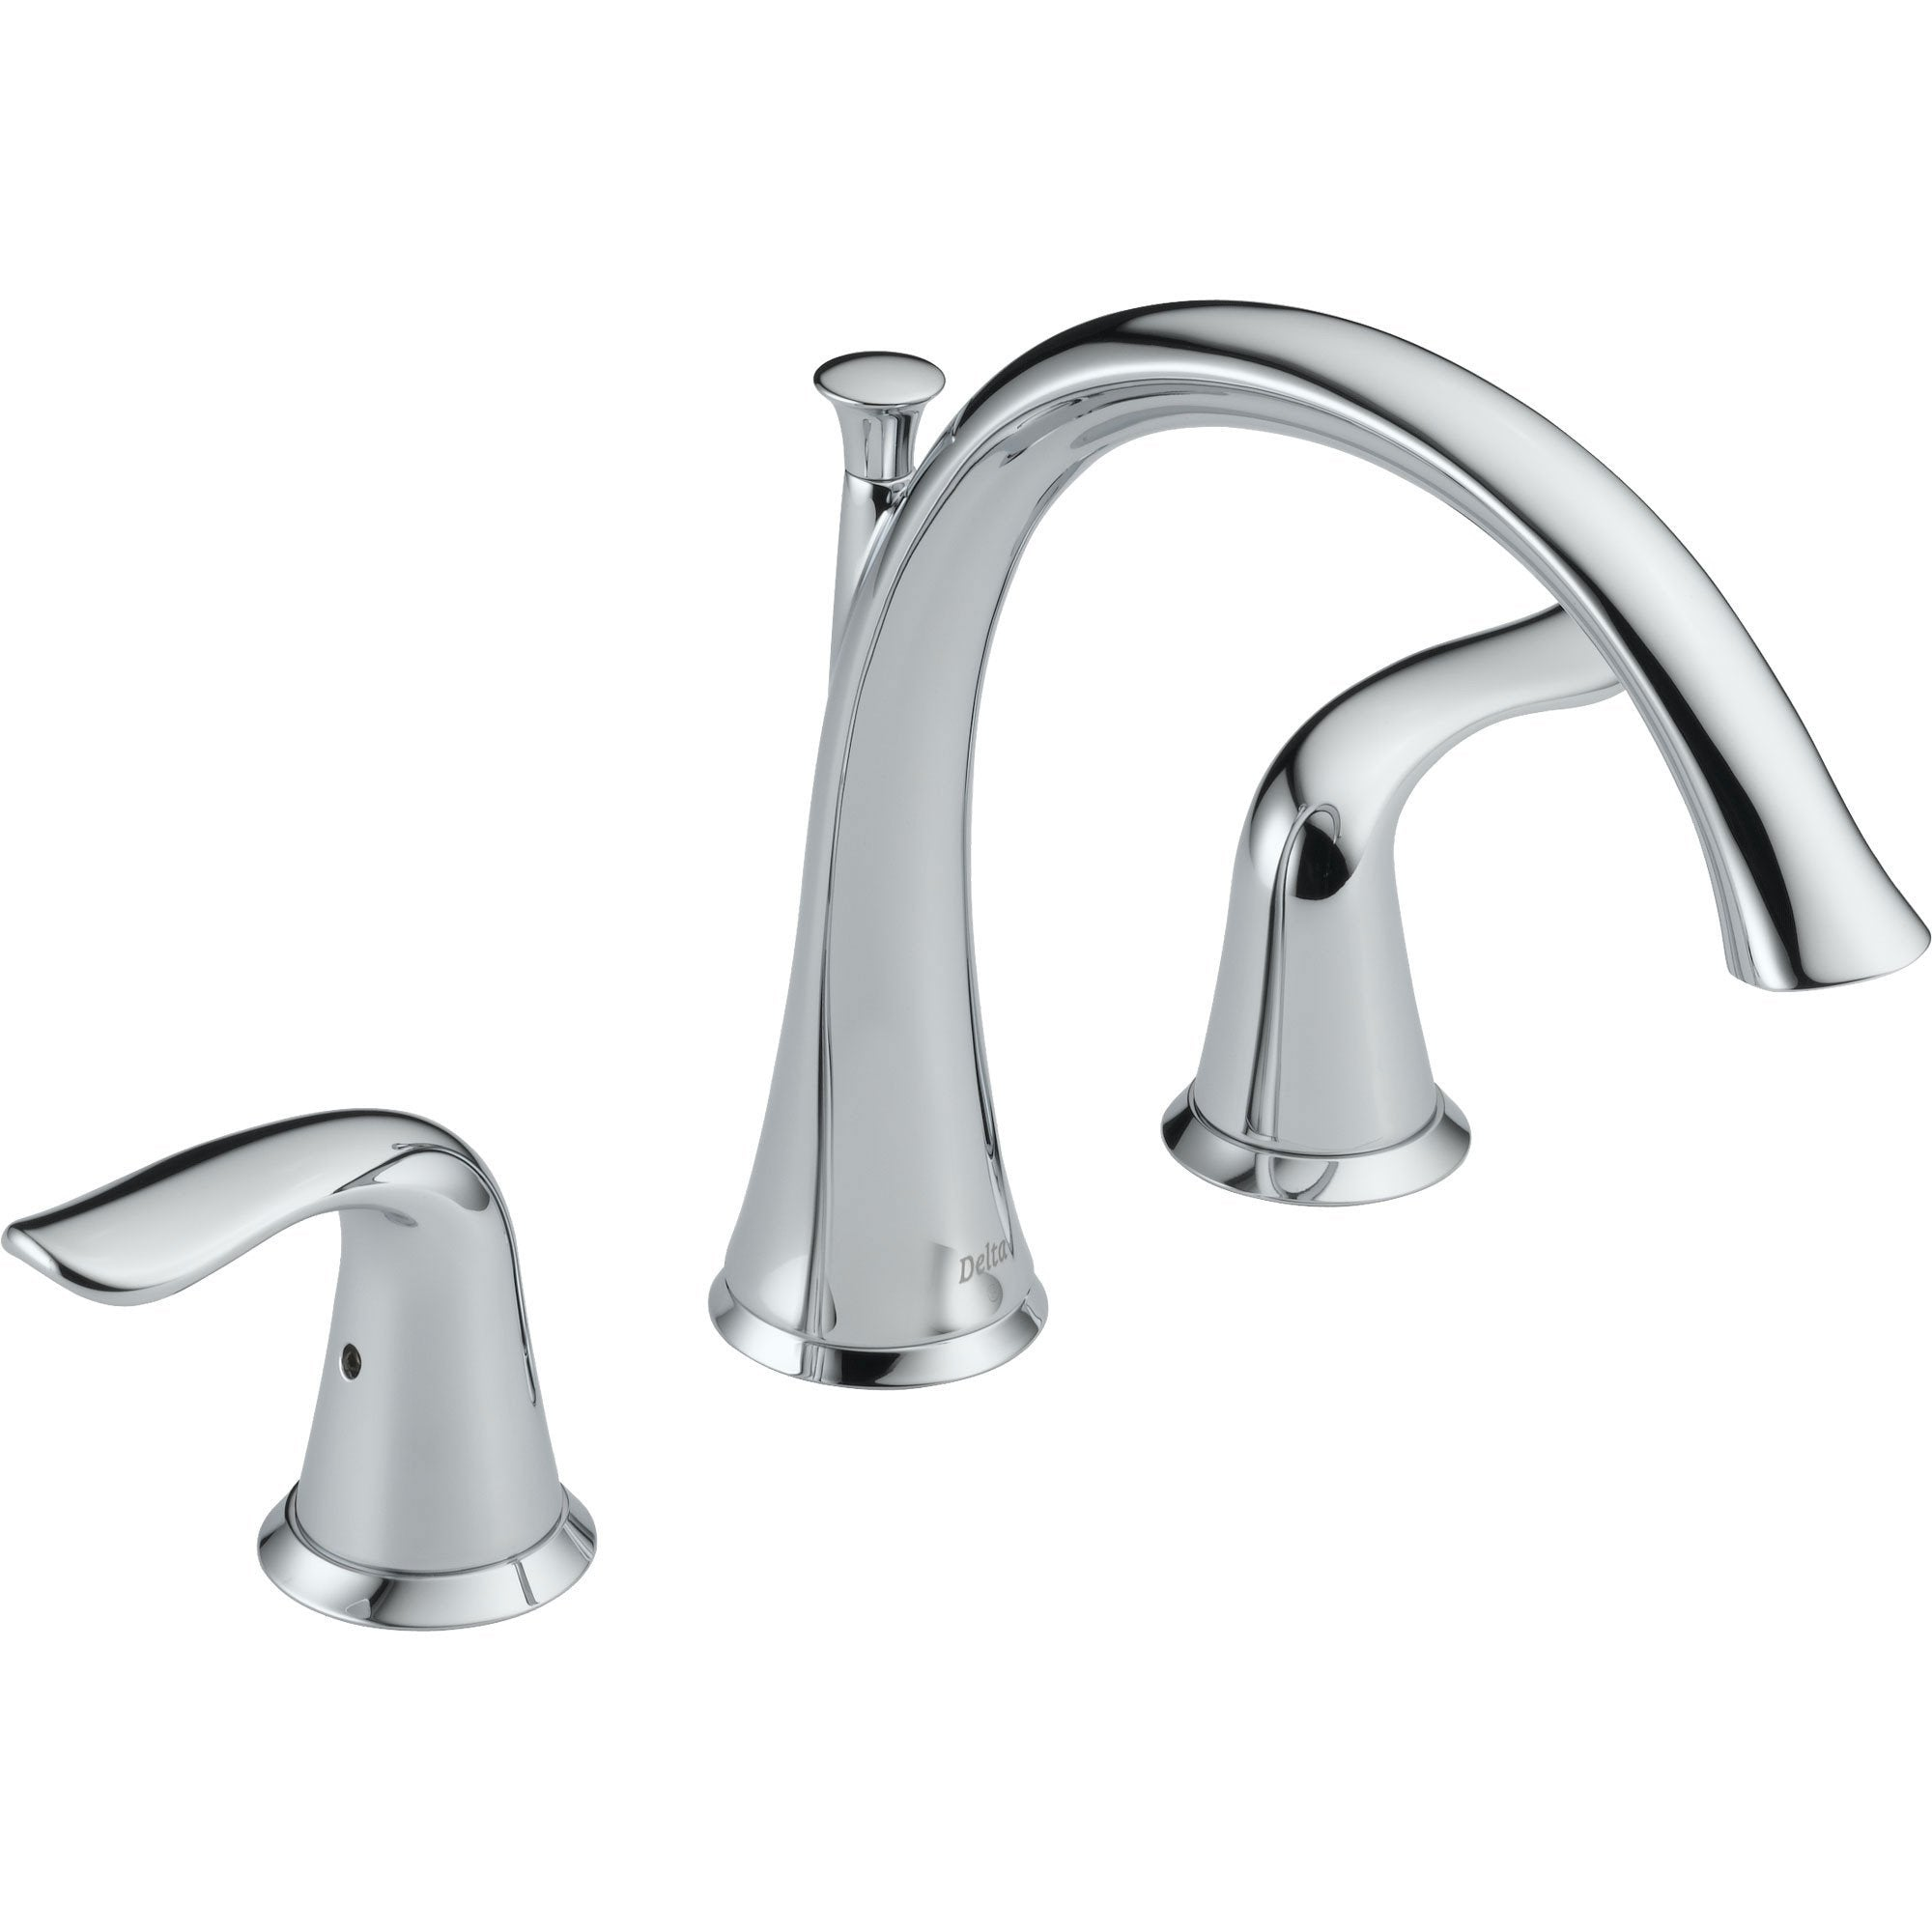 Delta Lahara Chrome 2-Handle Deck Mount Roman Tub Filler Faucet Trim Kit 337797